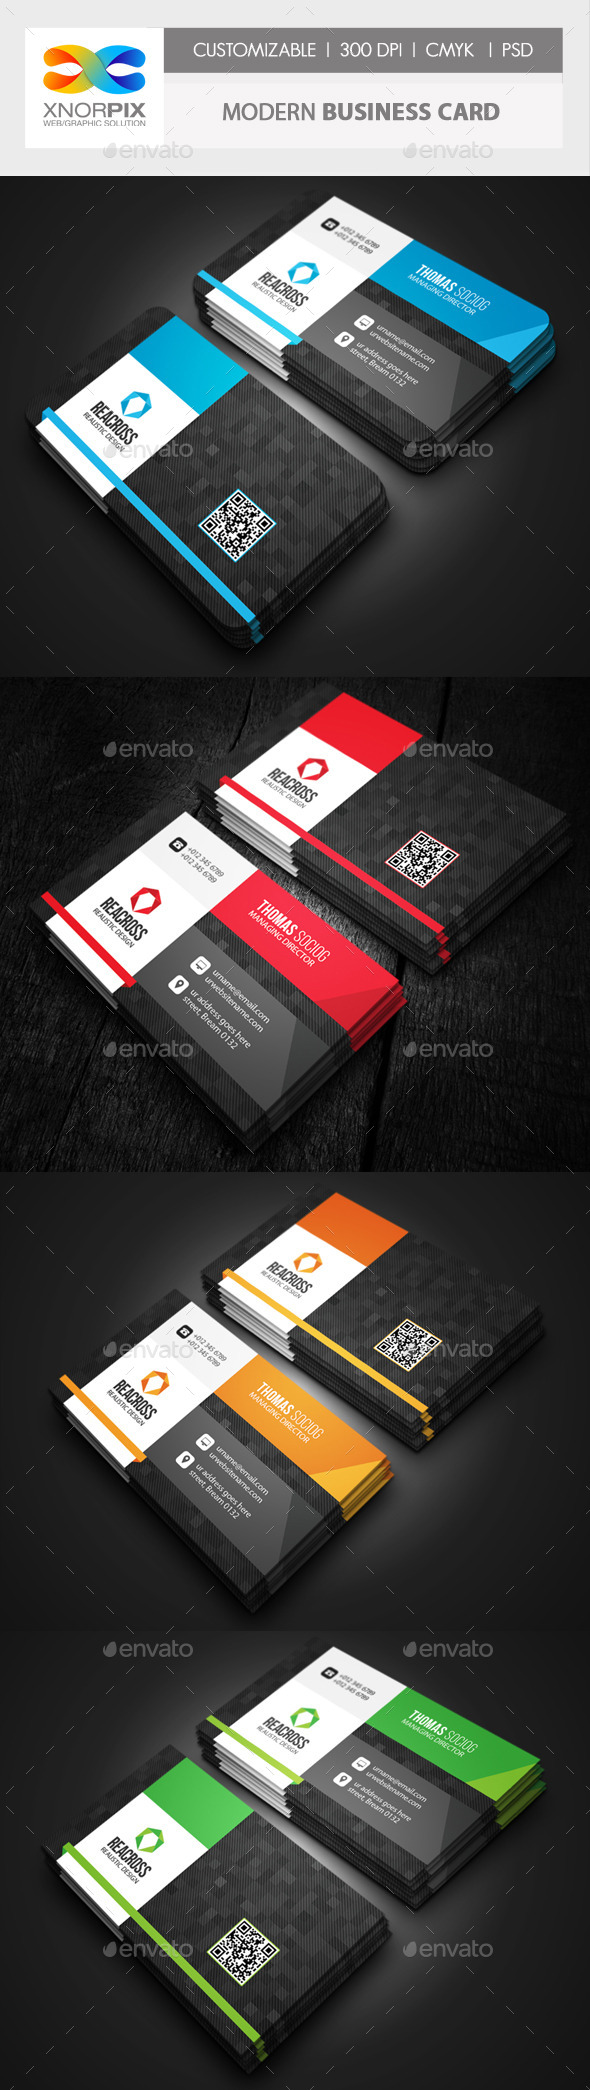 GraphicRiver Modern Business Card 10282843